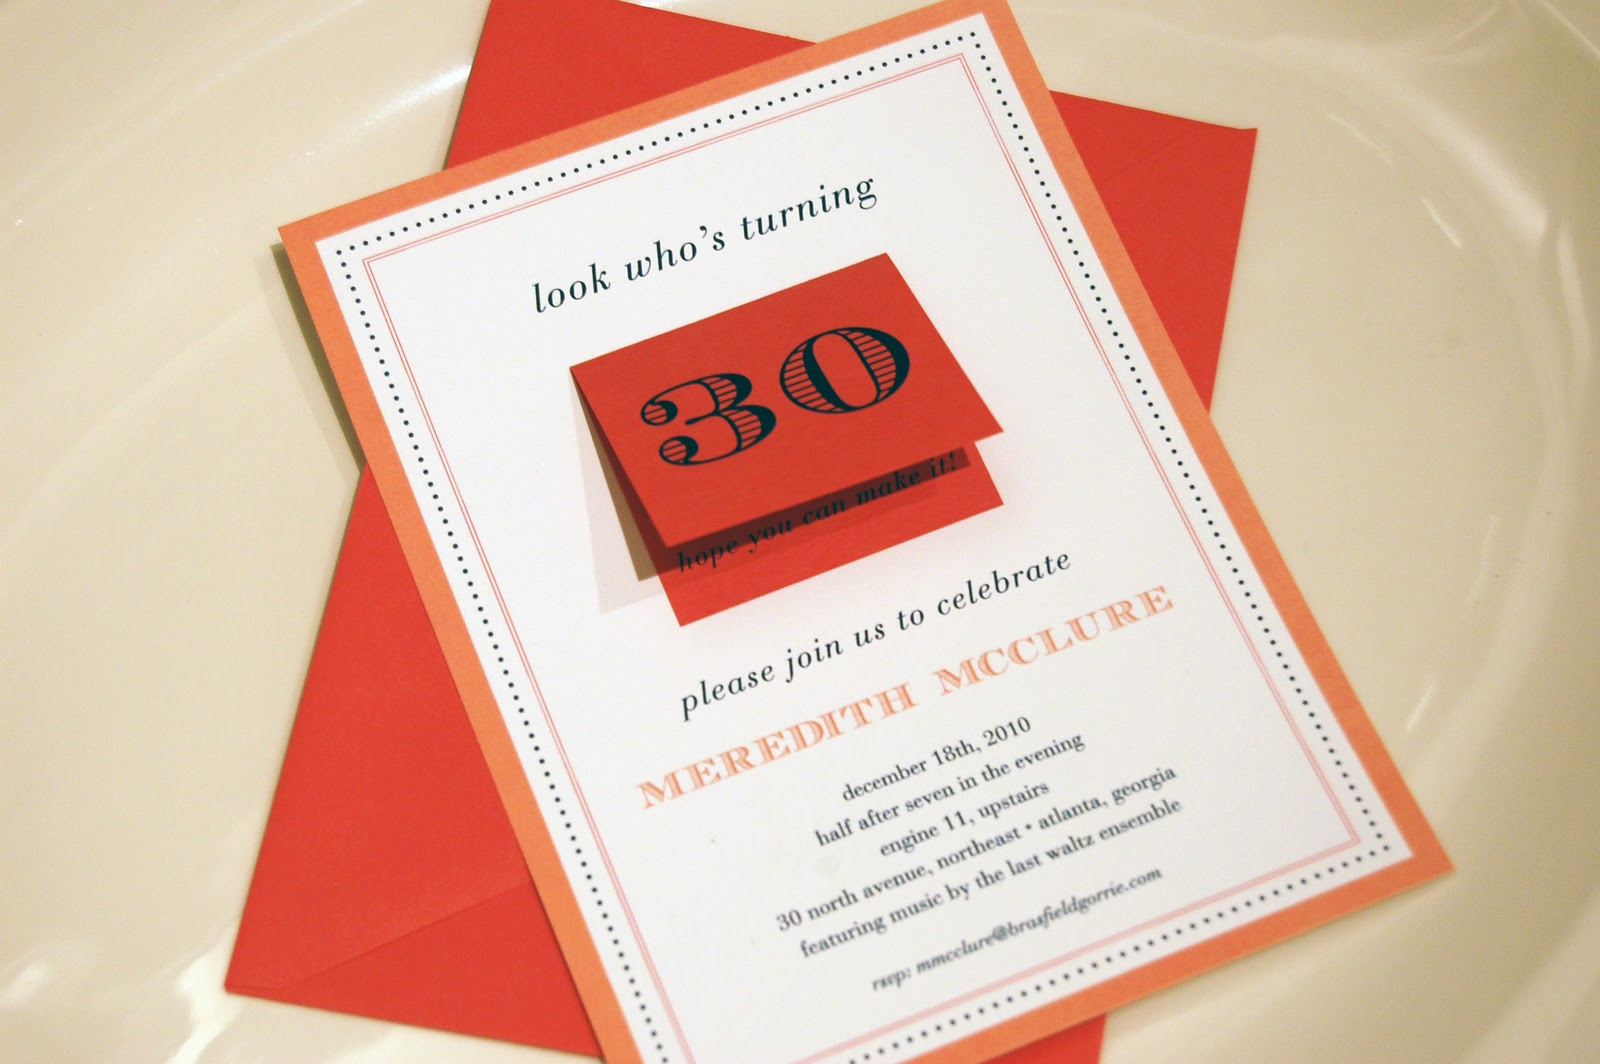 30th Birthday Party Invitation With A Mini Folded Card For Details